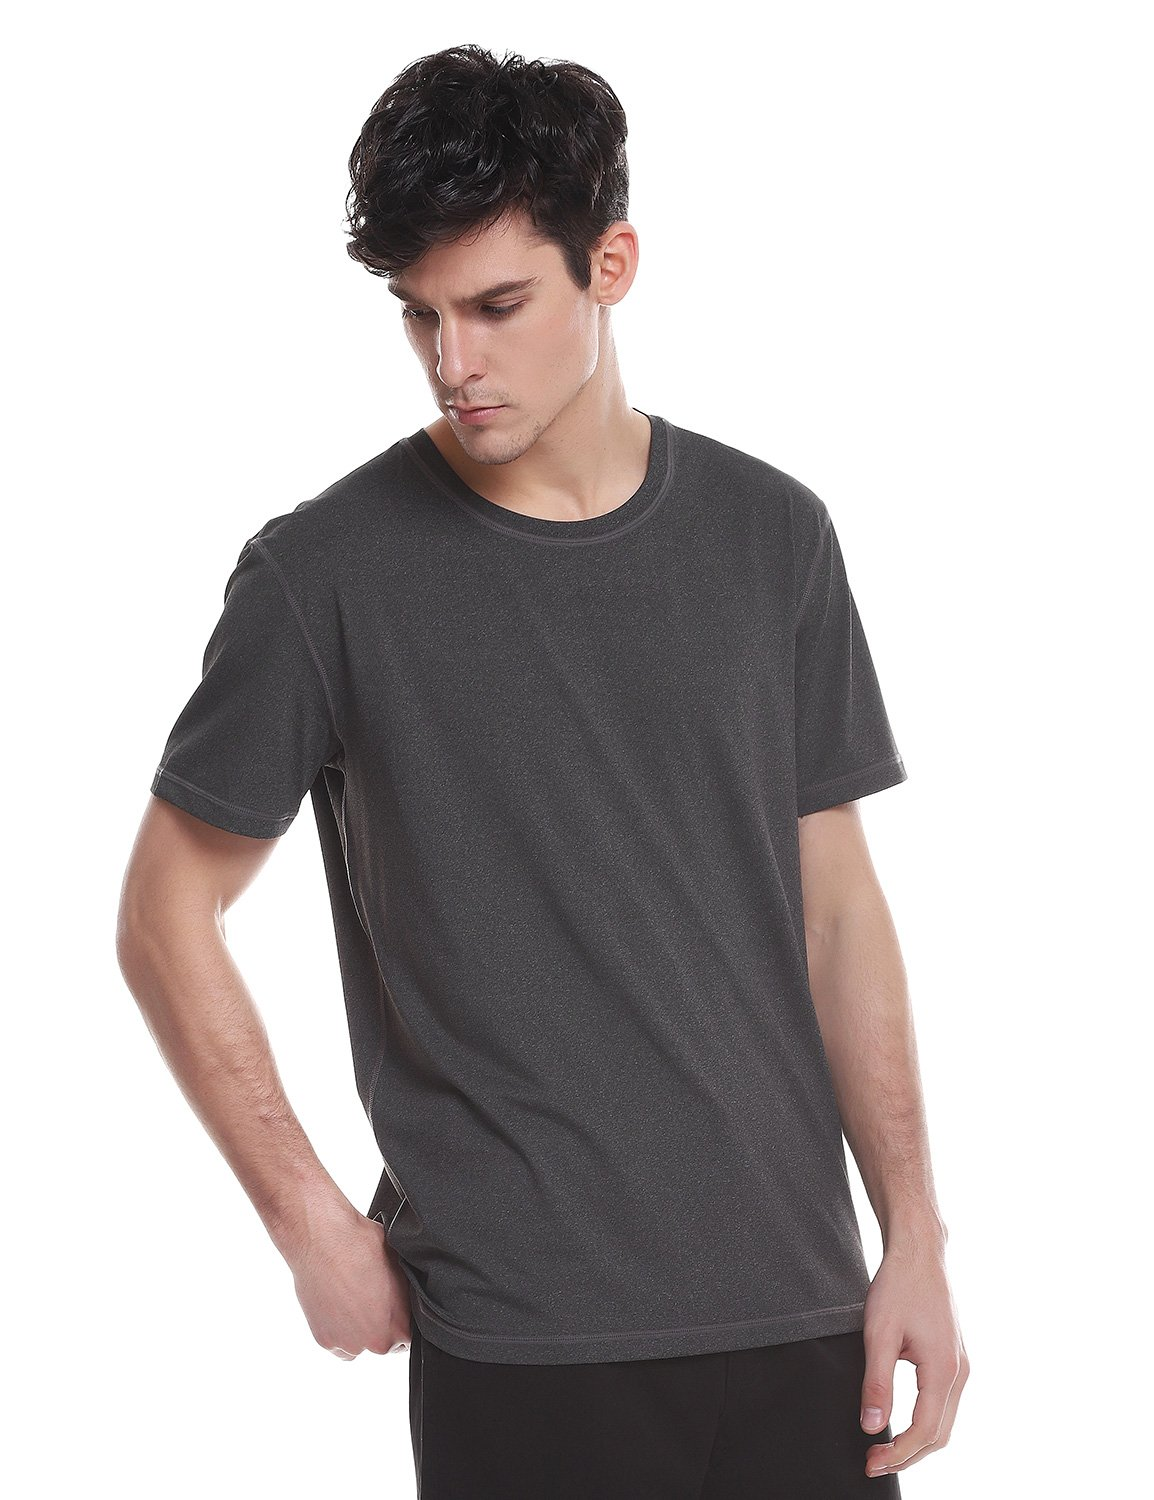 ZAN.STYLE Men Short Sleeve Crew Neck Tee Shirt Quick Dry Moisture Wicking Athletic Fit T Shirt Tops, Charcoal Gray, XX-Large